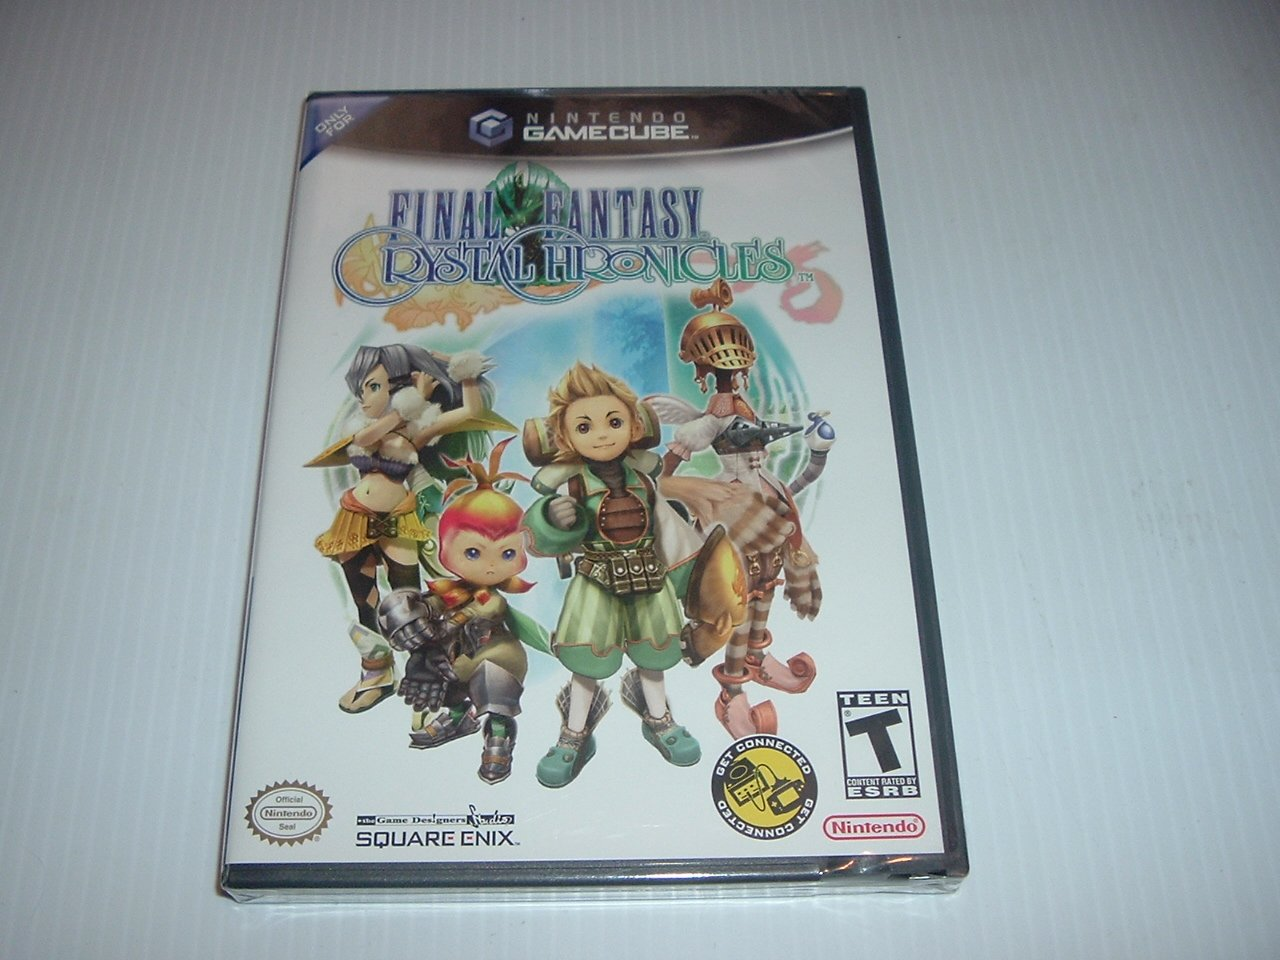 SEALED Final Fantasy: Crystal Chronicles (Gamecube) BRAND NEW great Square Enix RPG game, FOR SALE